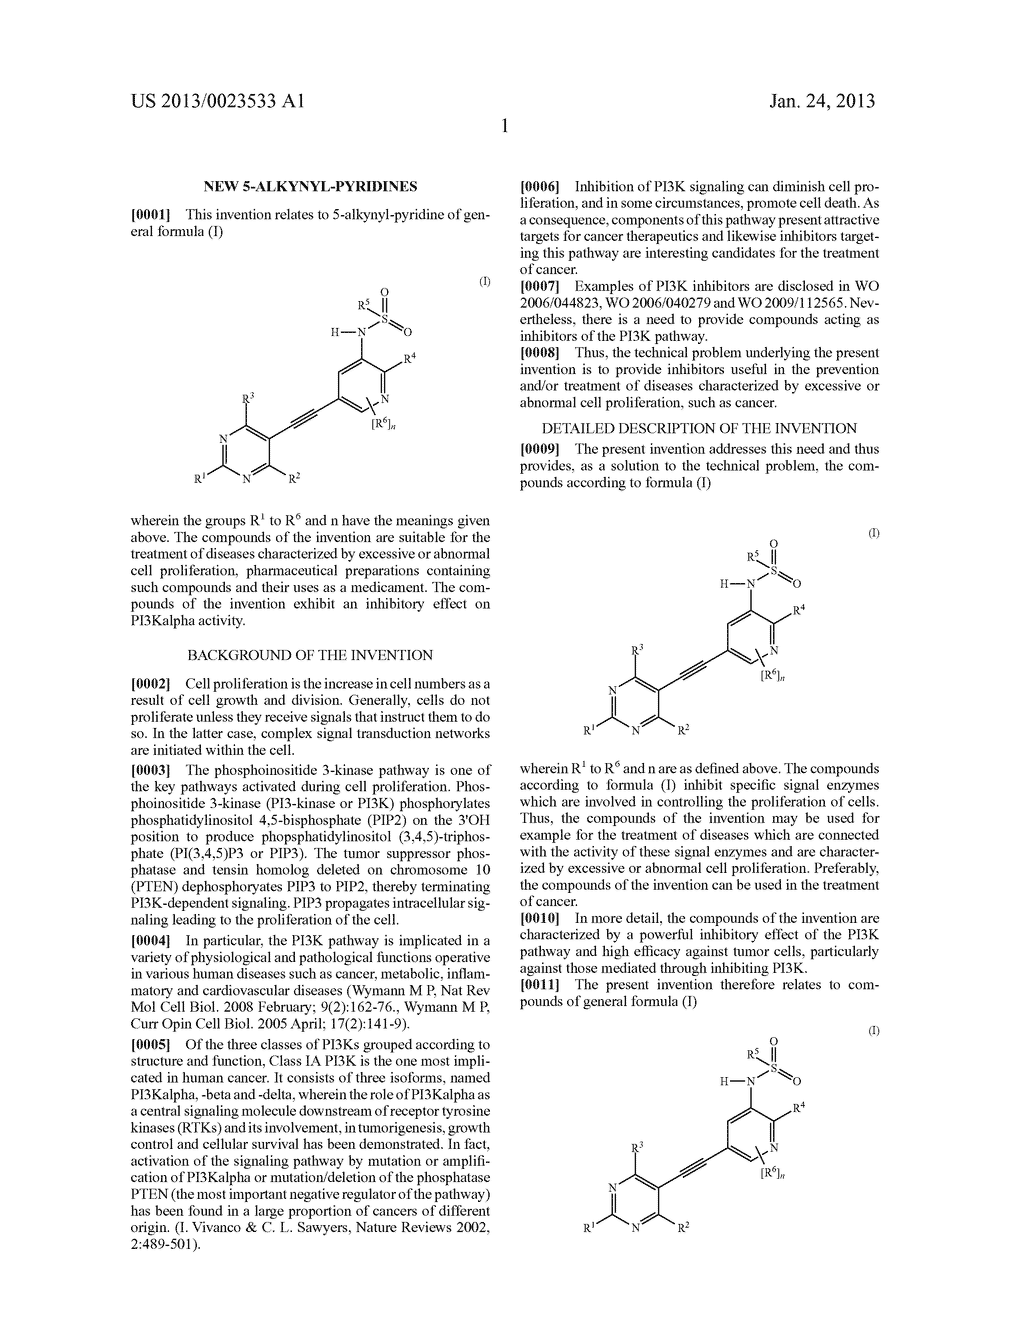 NEW 5-ALKYNYL-PYRIDINES - diagram, schematic, and image 02